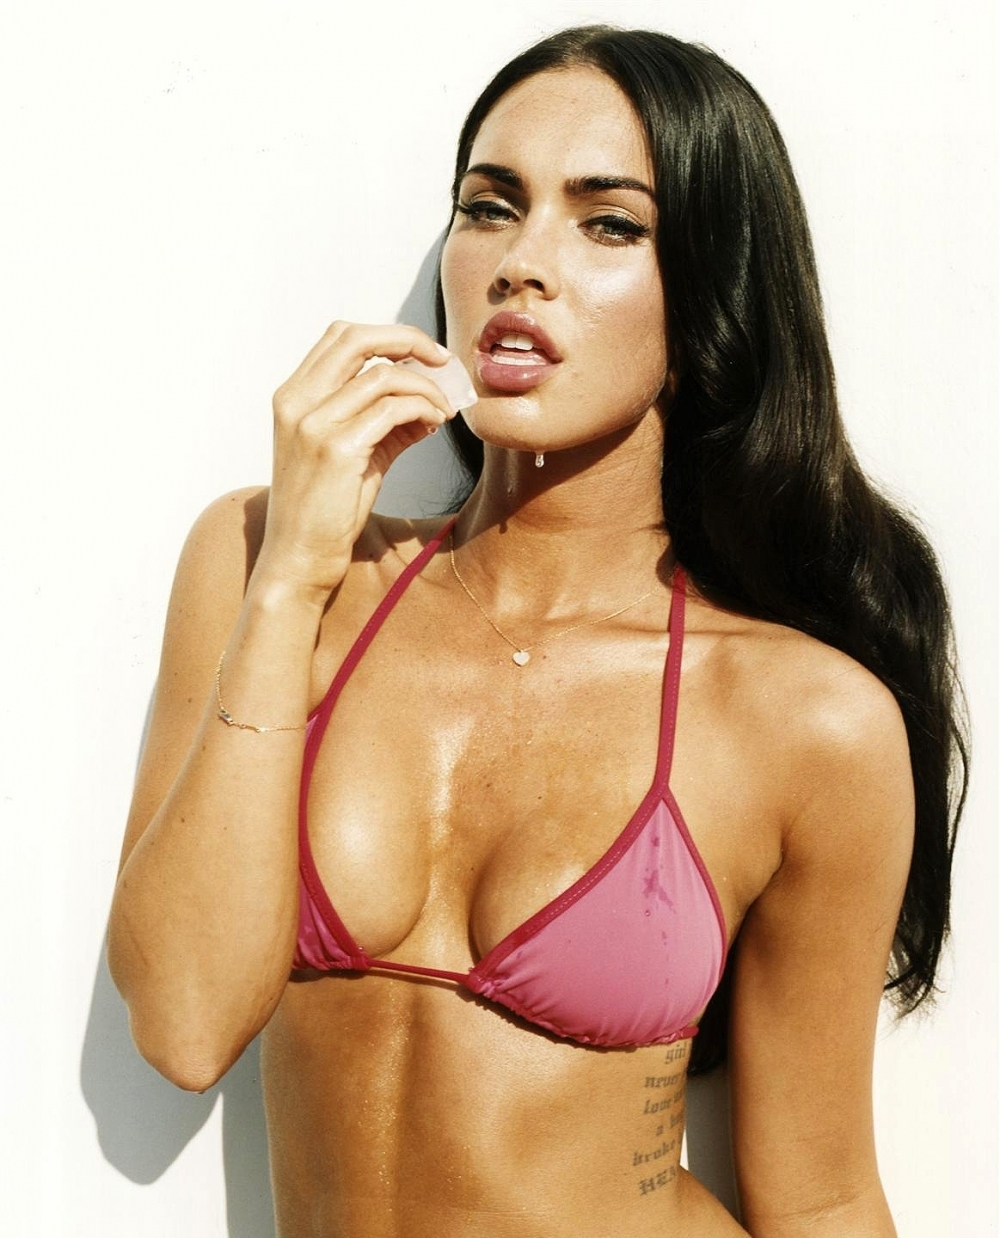 Megan Fox Latest Hot and Spicy Photos